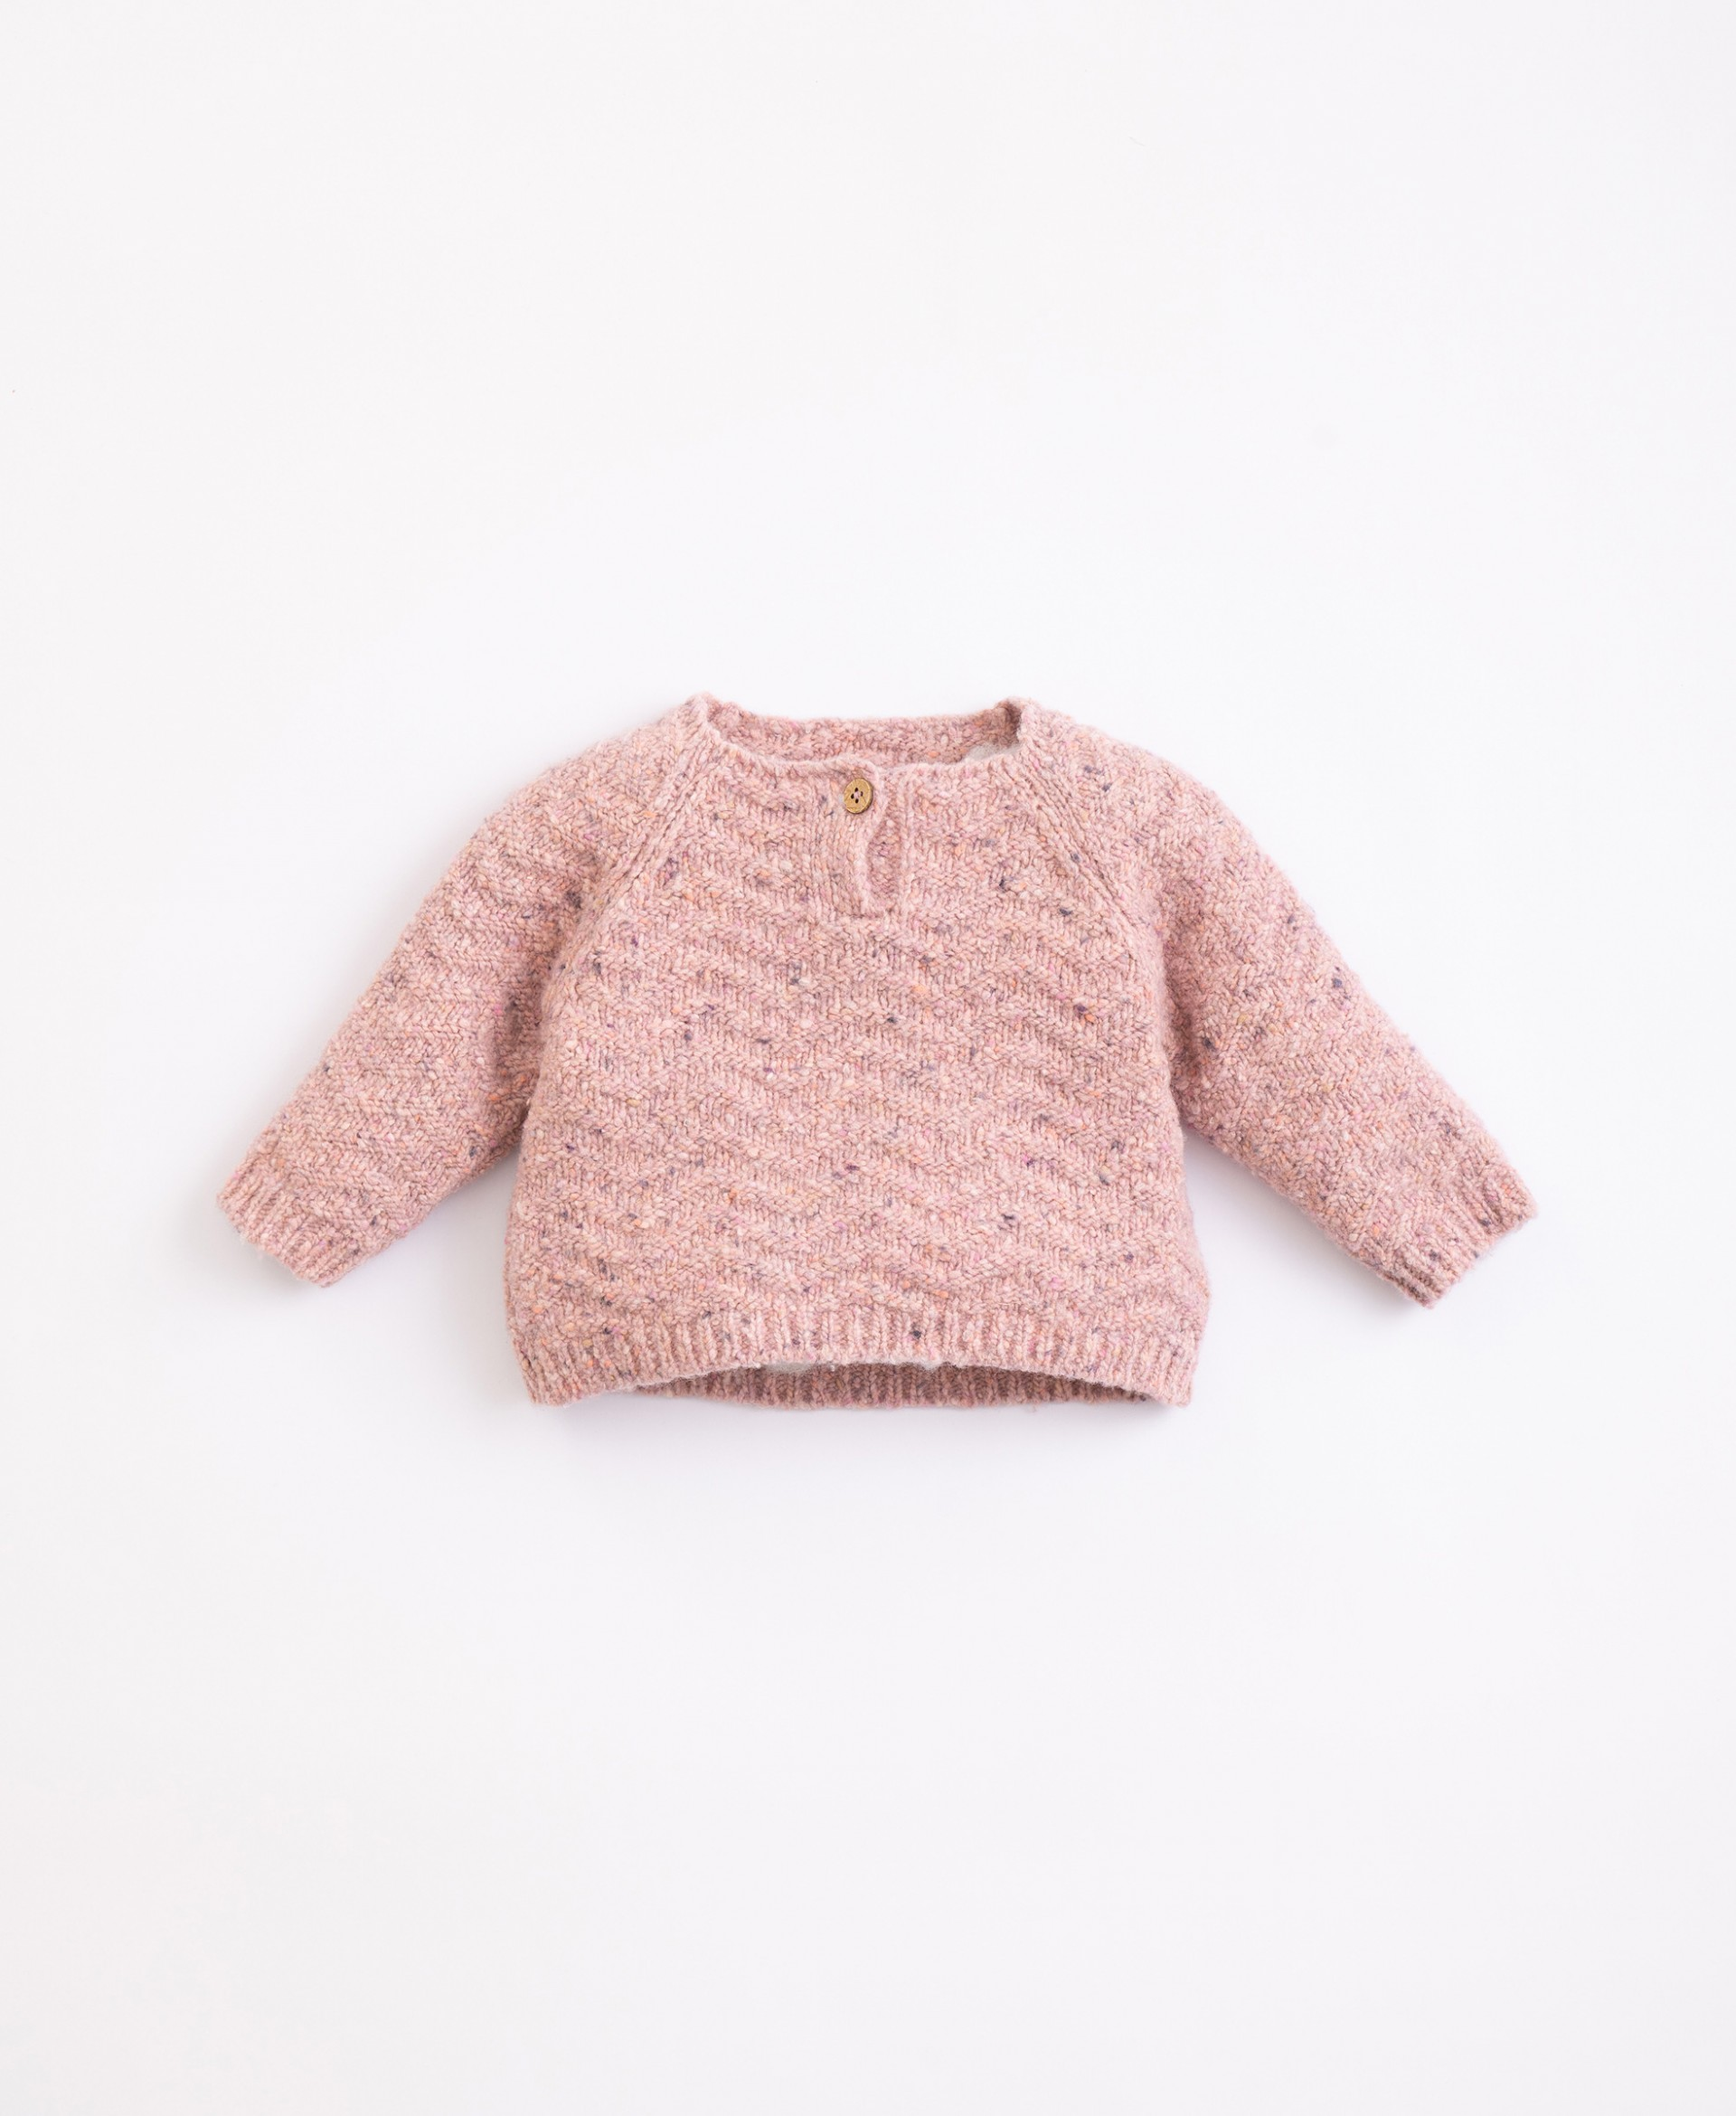 Jersey made from recycled fibres with coconut buttons | Illustration